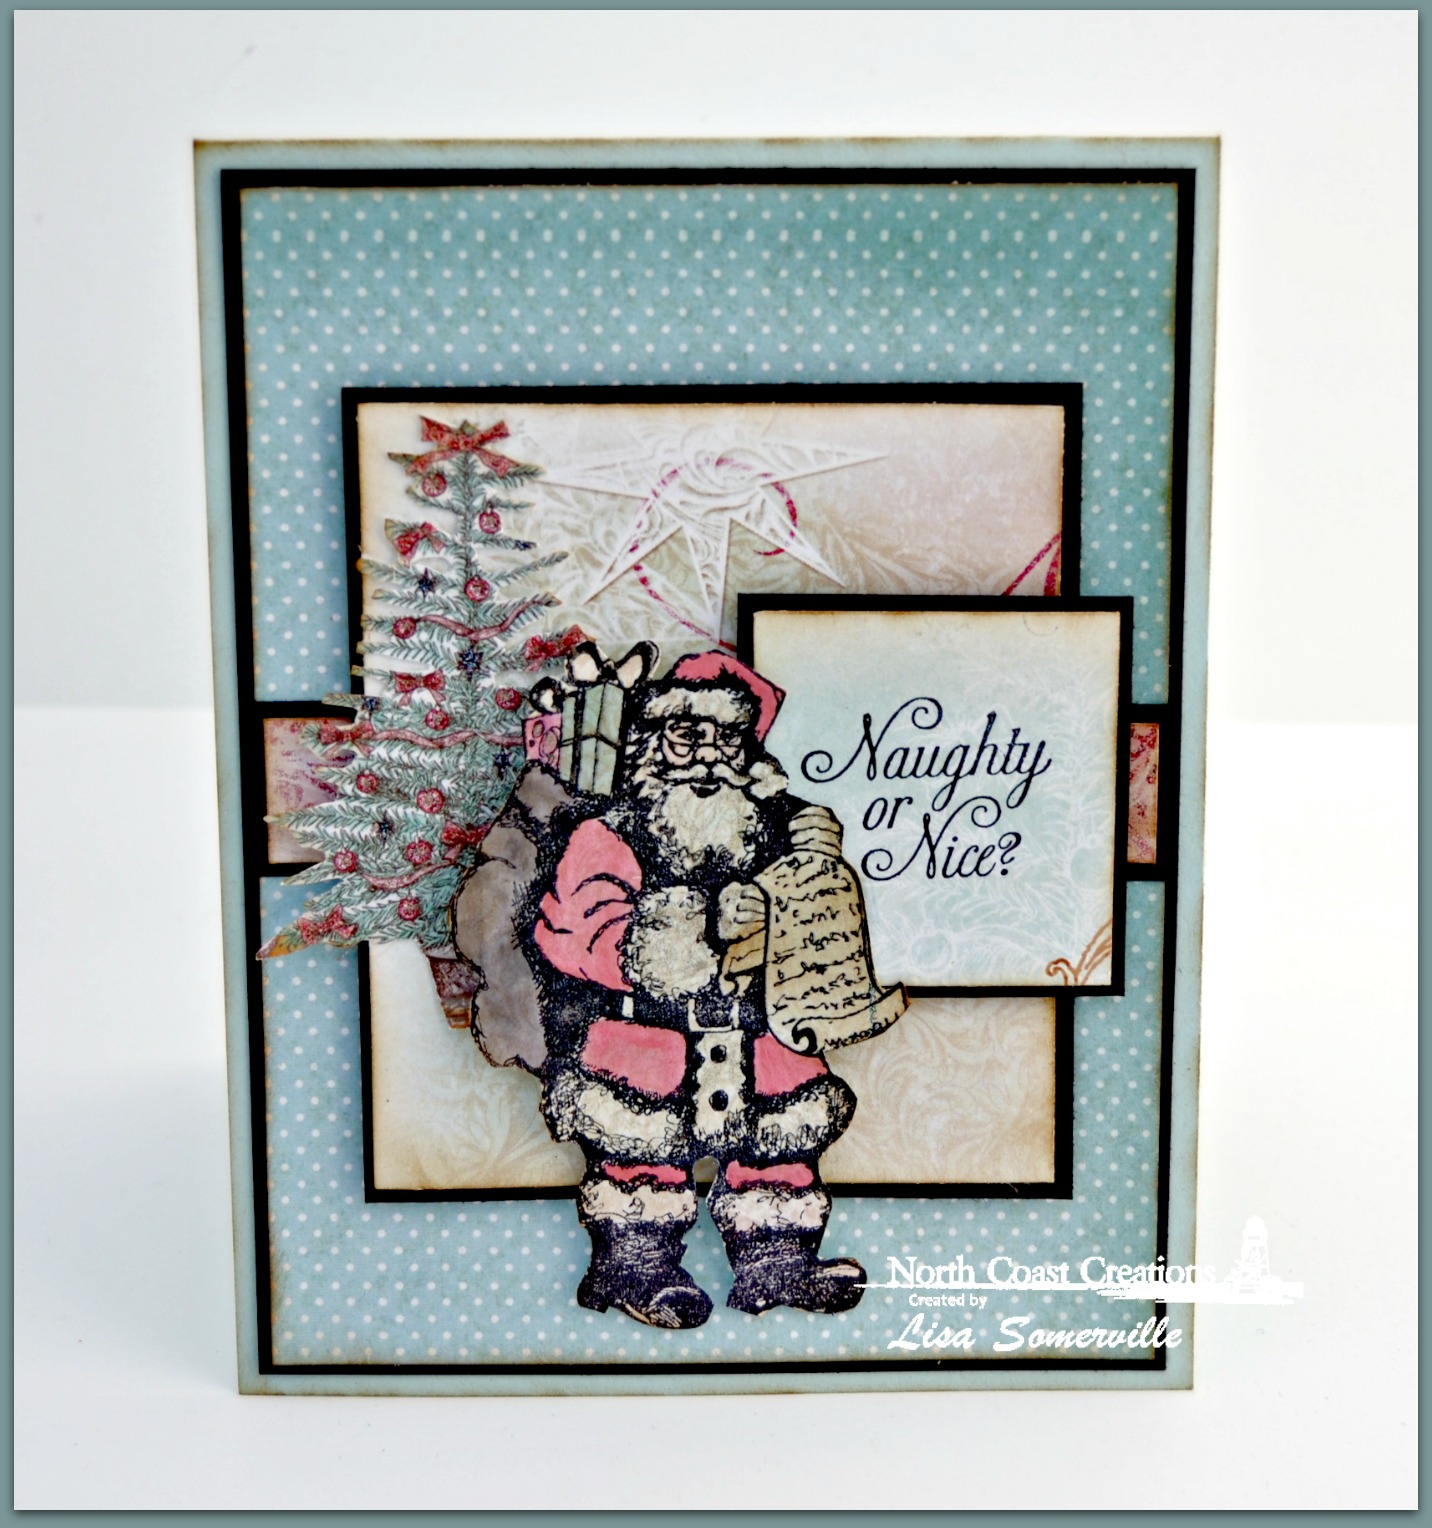 Stamps - North Coast Creations Santa's List, ODBD Christmas Paper Collection 2014